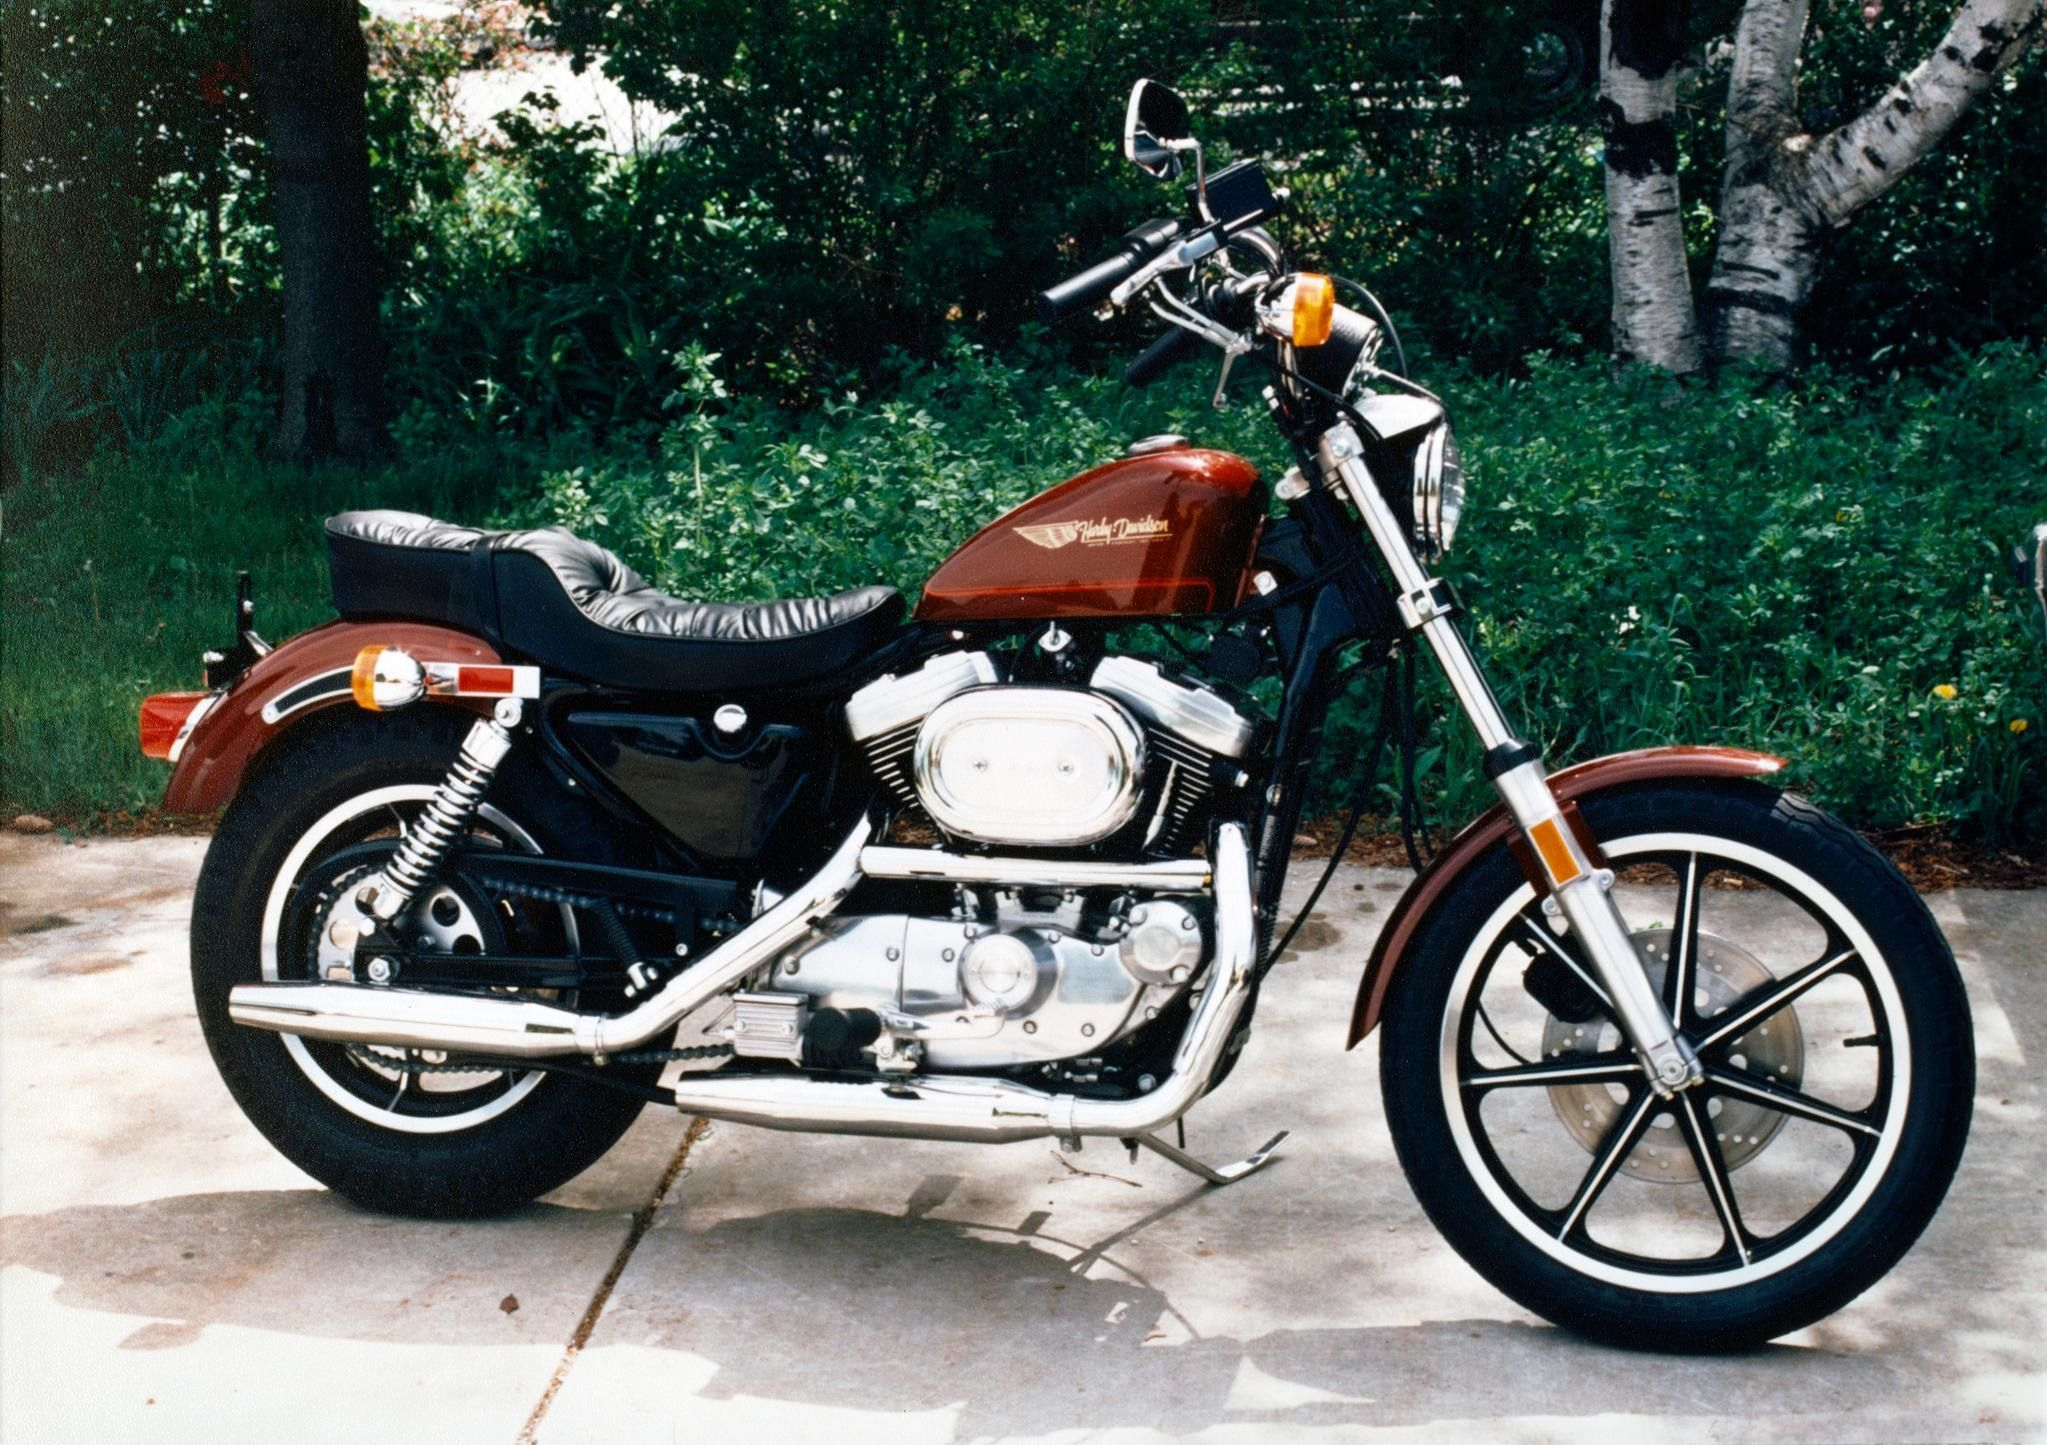 From The Archives A 1987 Sportster 1100 The Second Model Year Of The Evo Sportster Hd Sportster Sportster Harley Davidson